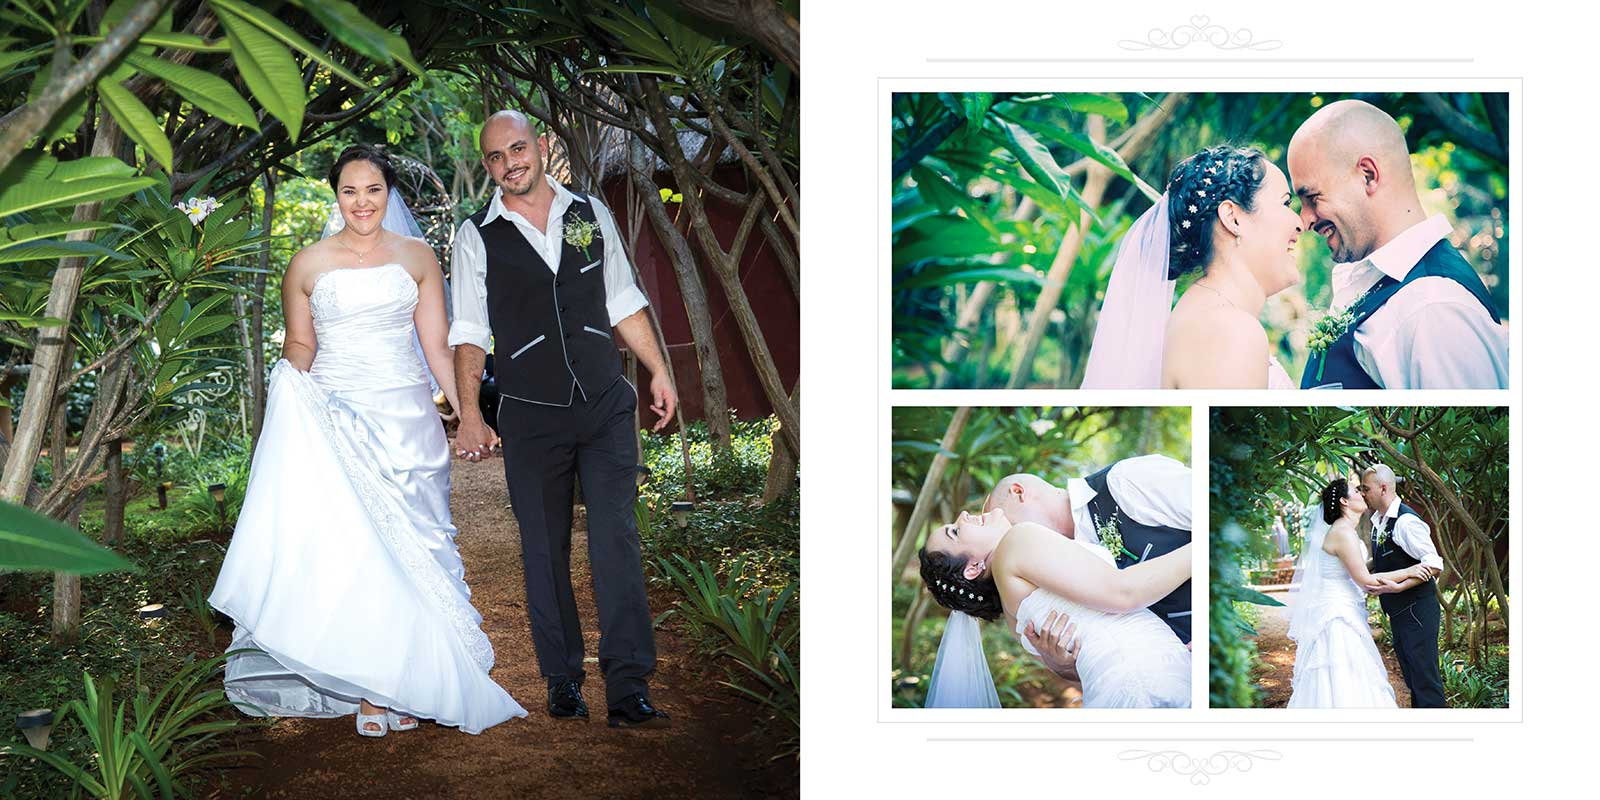 Wedding photography in garden